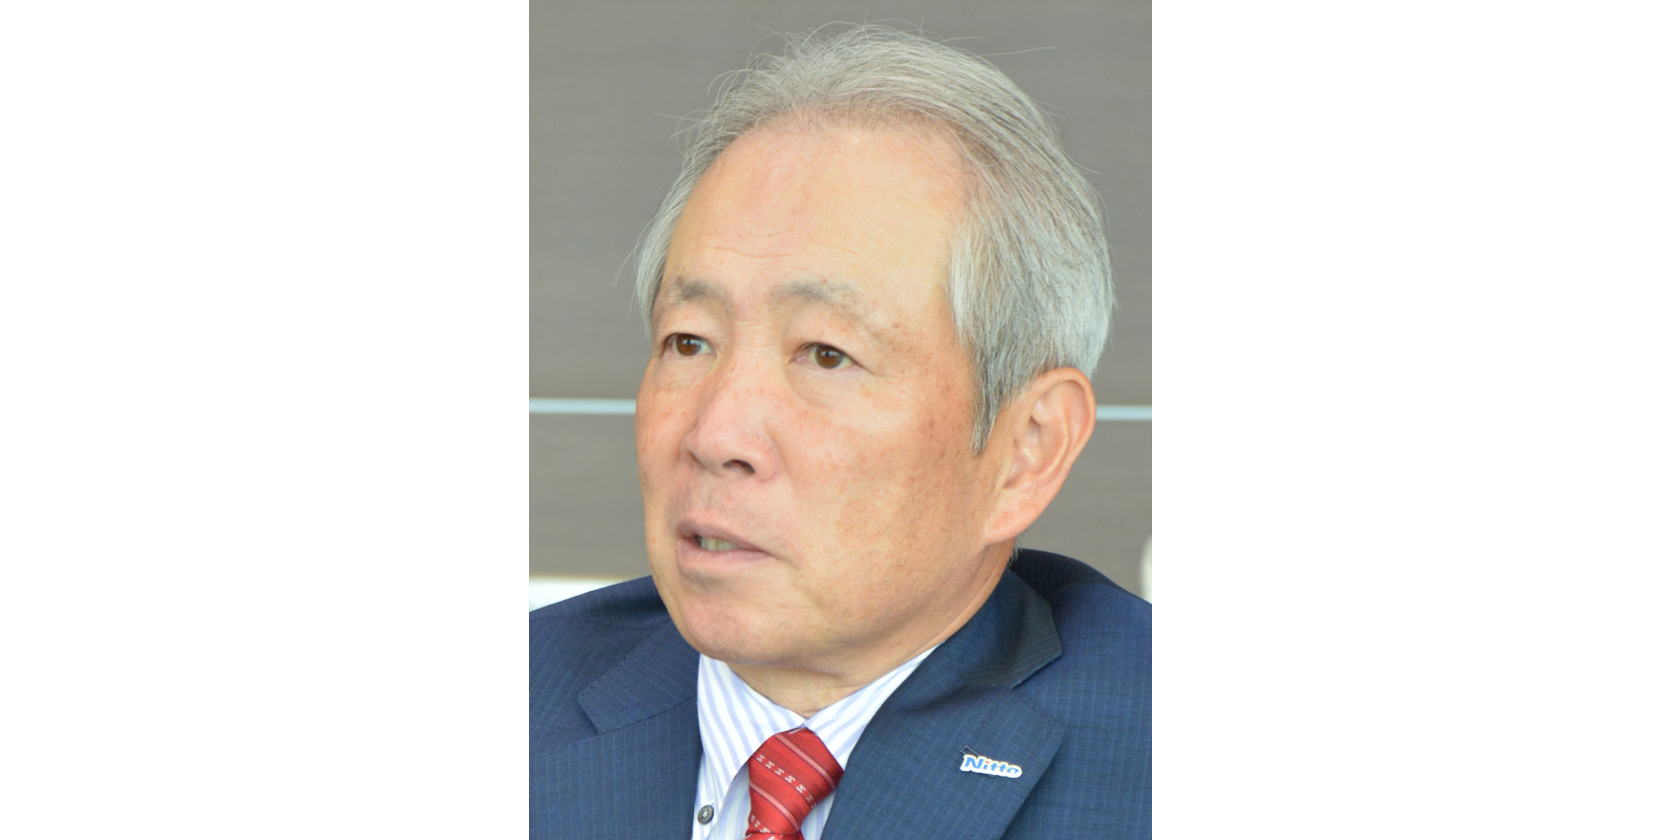 Interview: Nitto Denko President Optimistic in Lead-Up to Company's 100th Anniversary